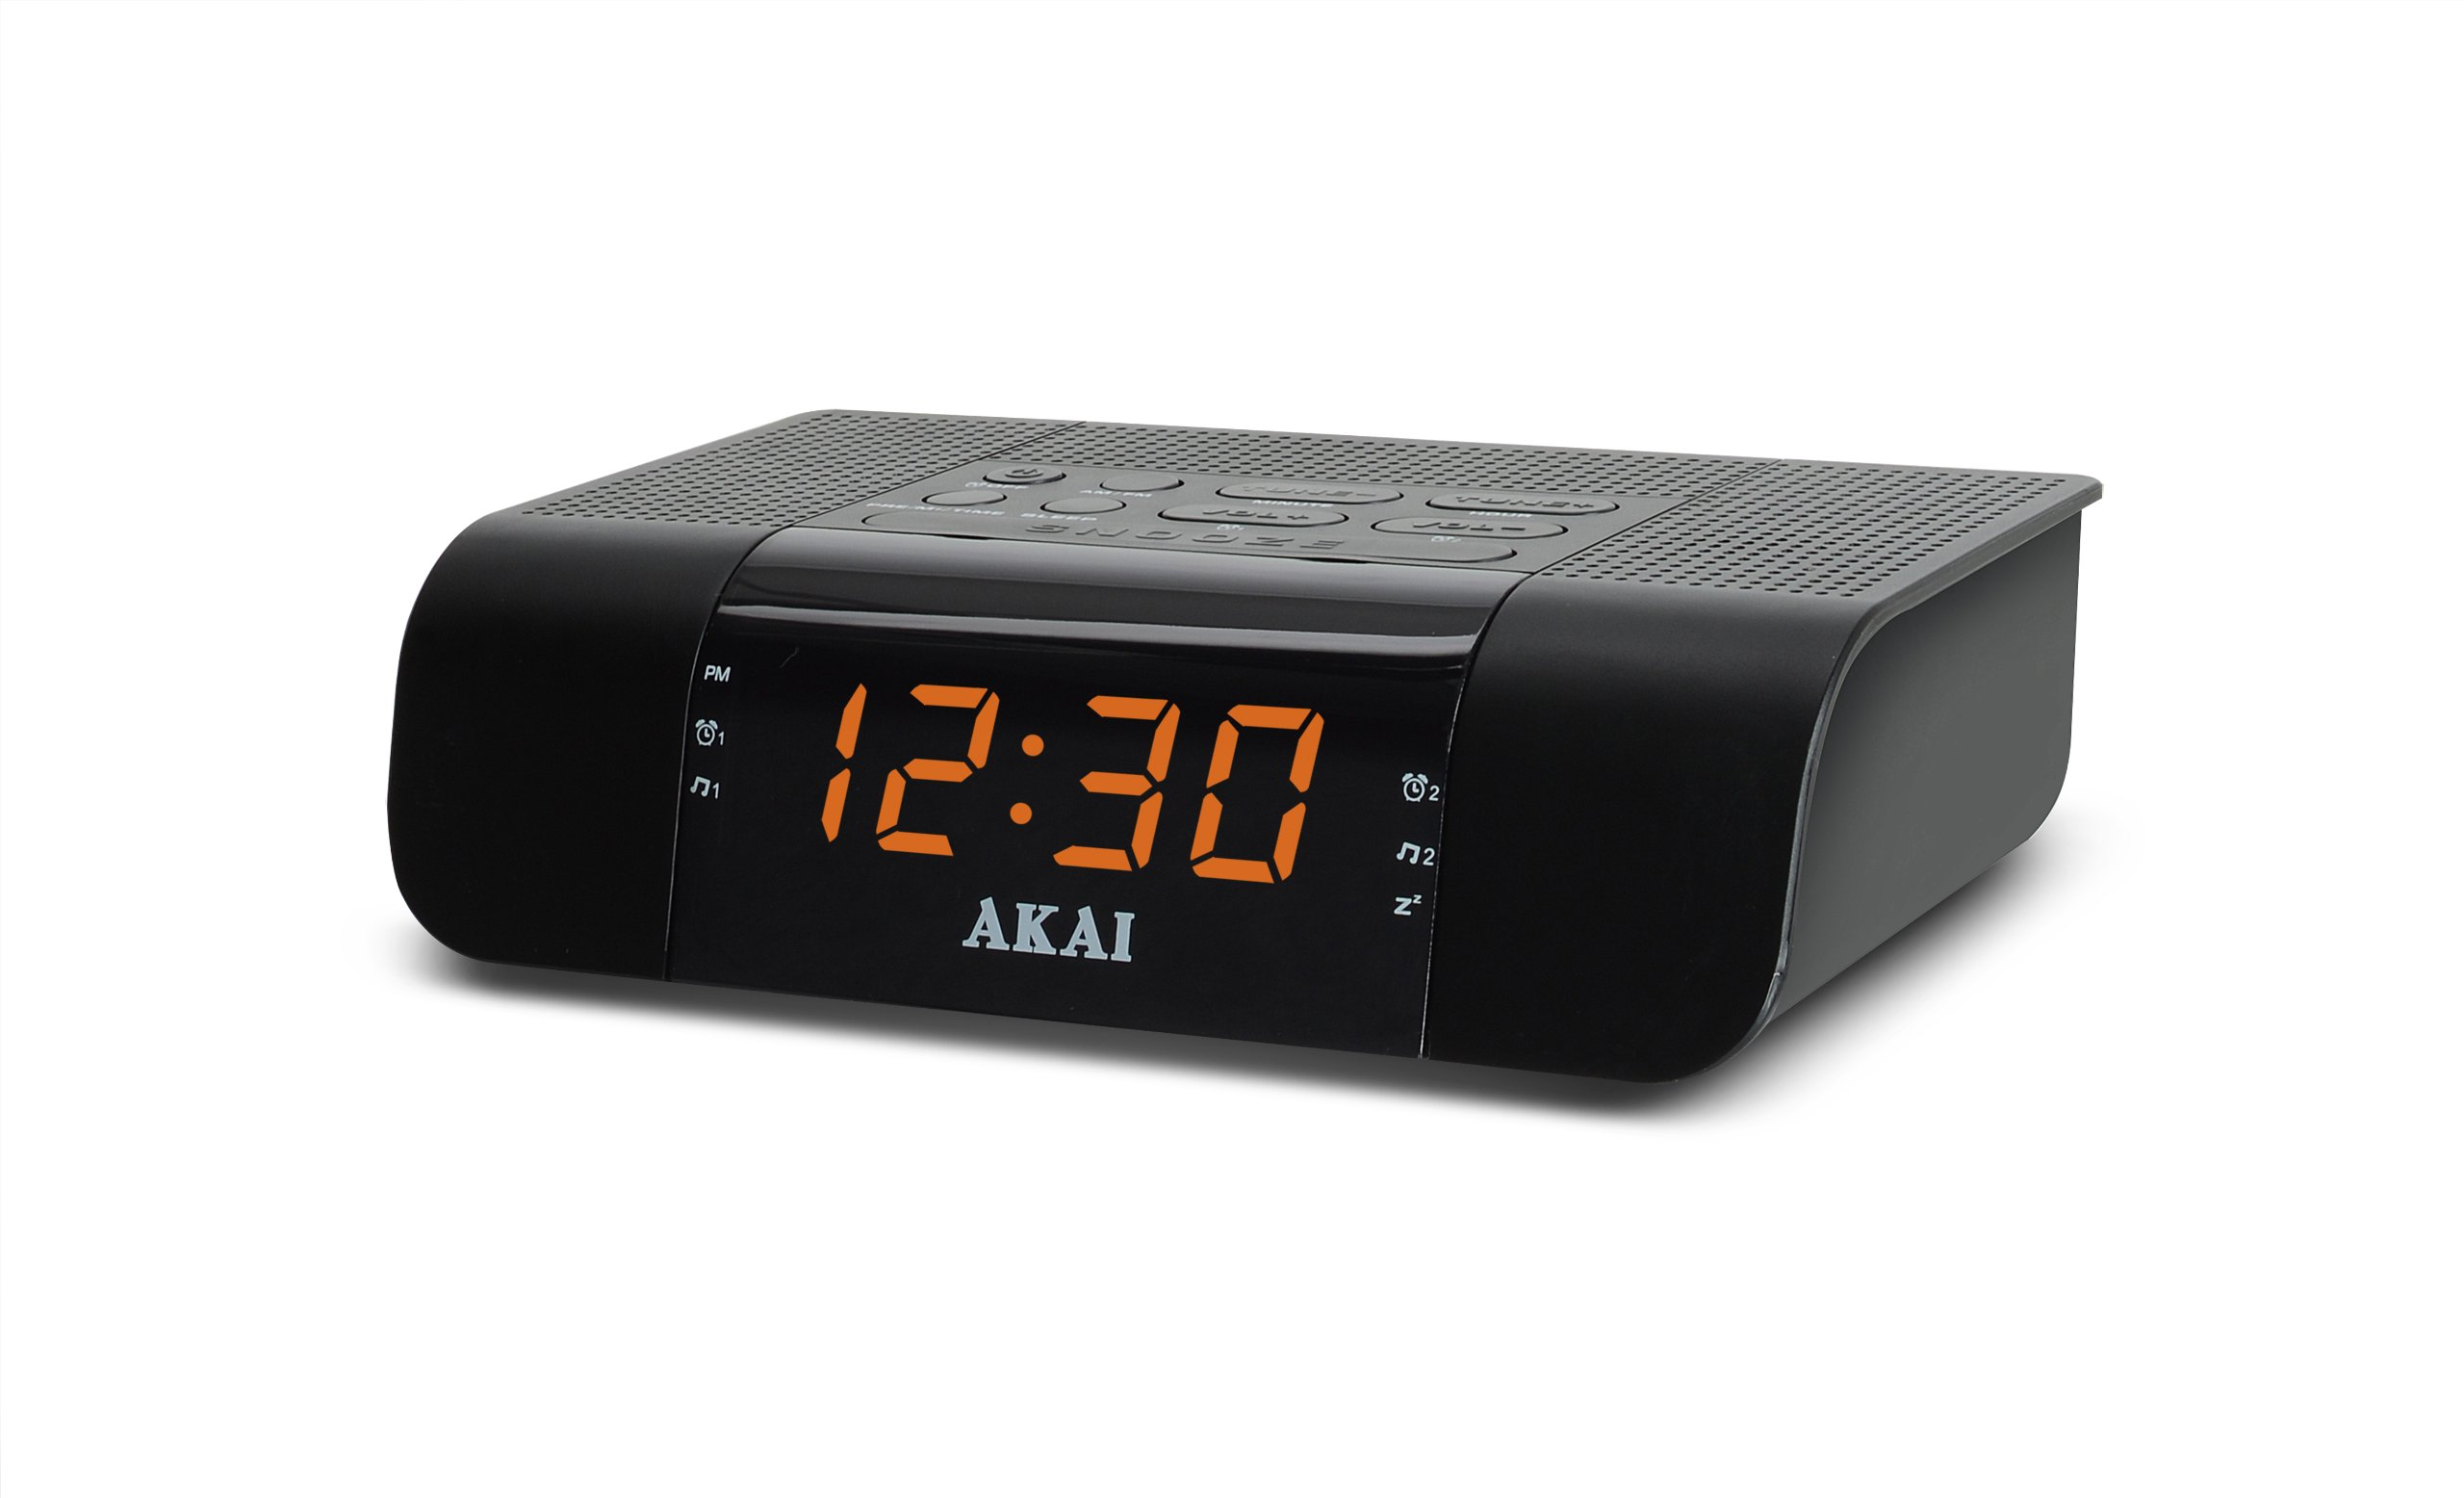 Akai CEU1007 Hotel Series Clock Radio